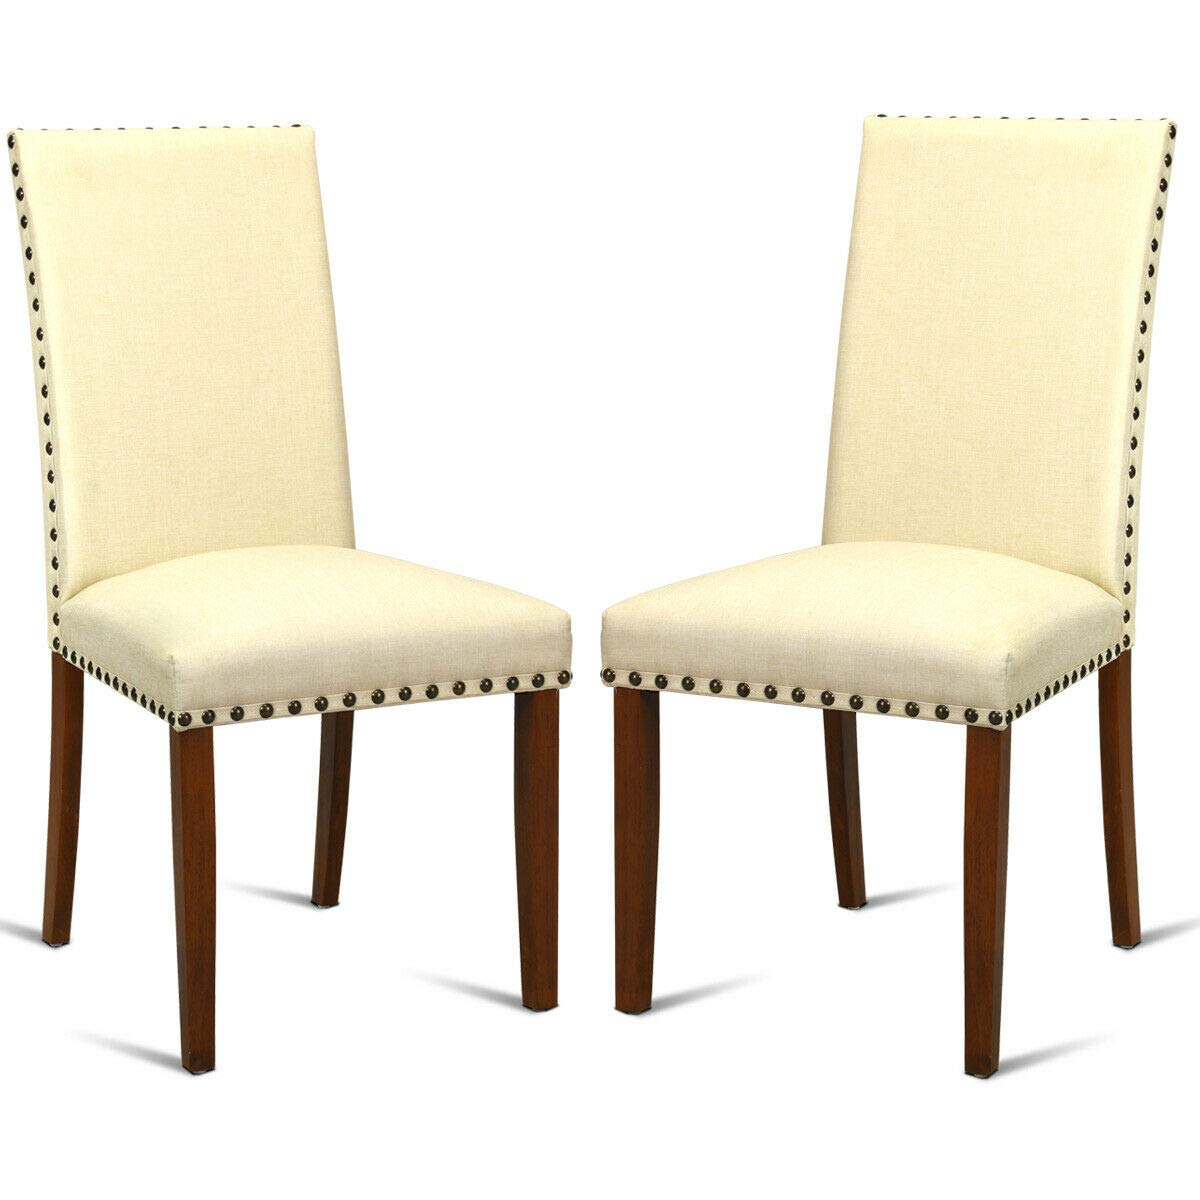 Giantex Set of 2Fabric Dining Chairs w/Nailed Trim, Upholstered Cushion &Solid Rubber Wooden Legs, Sponge Backrest, Classical Mid Century Style, 2 PCS Armless Side Chairs, Beige by Giantex